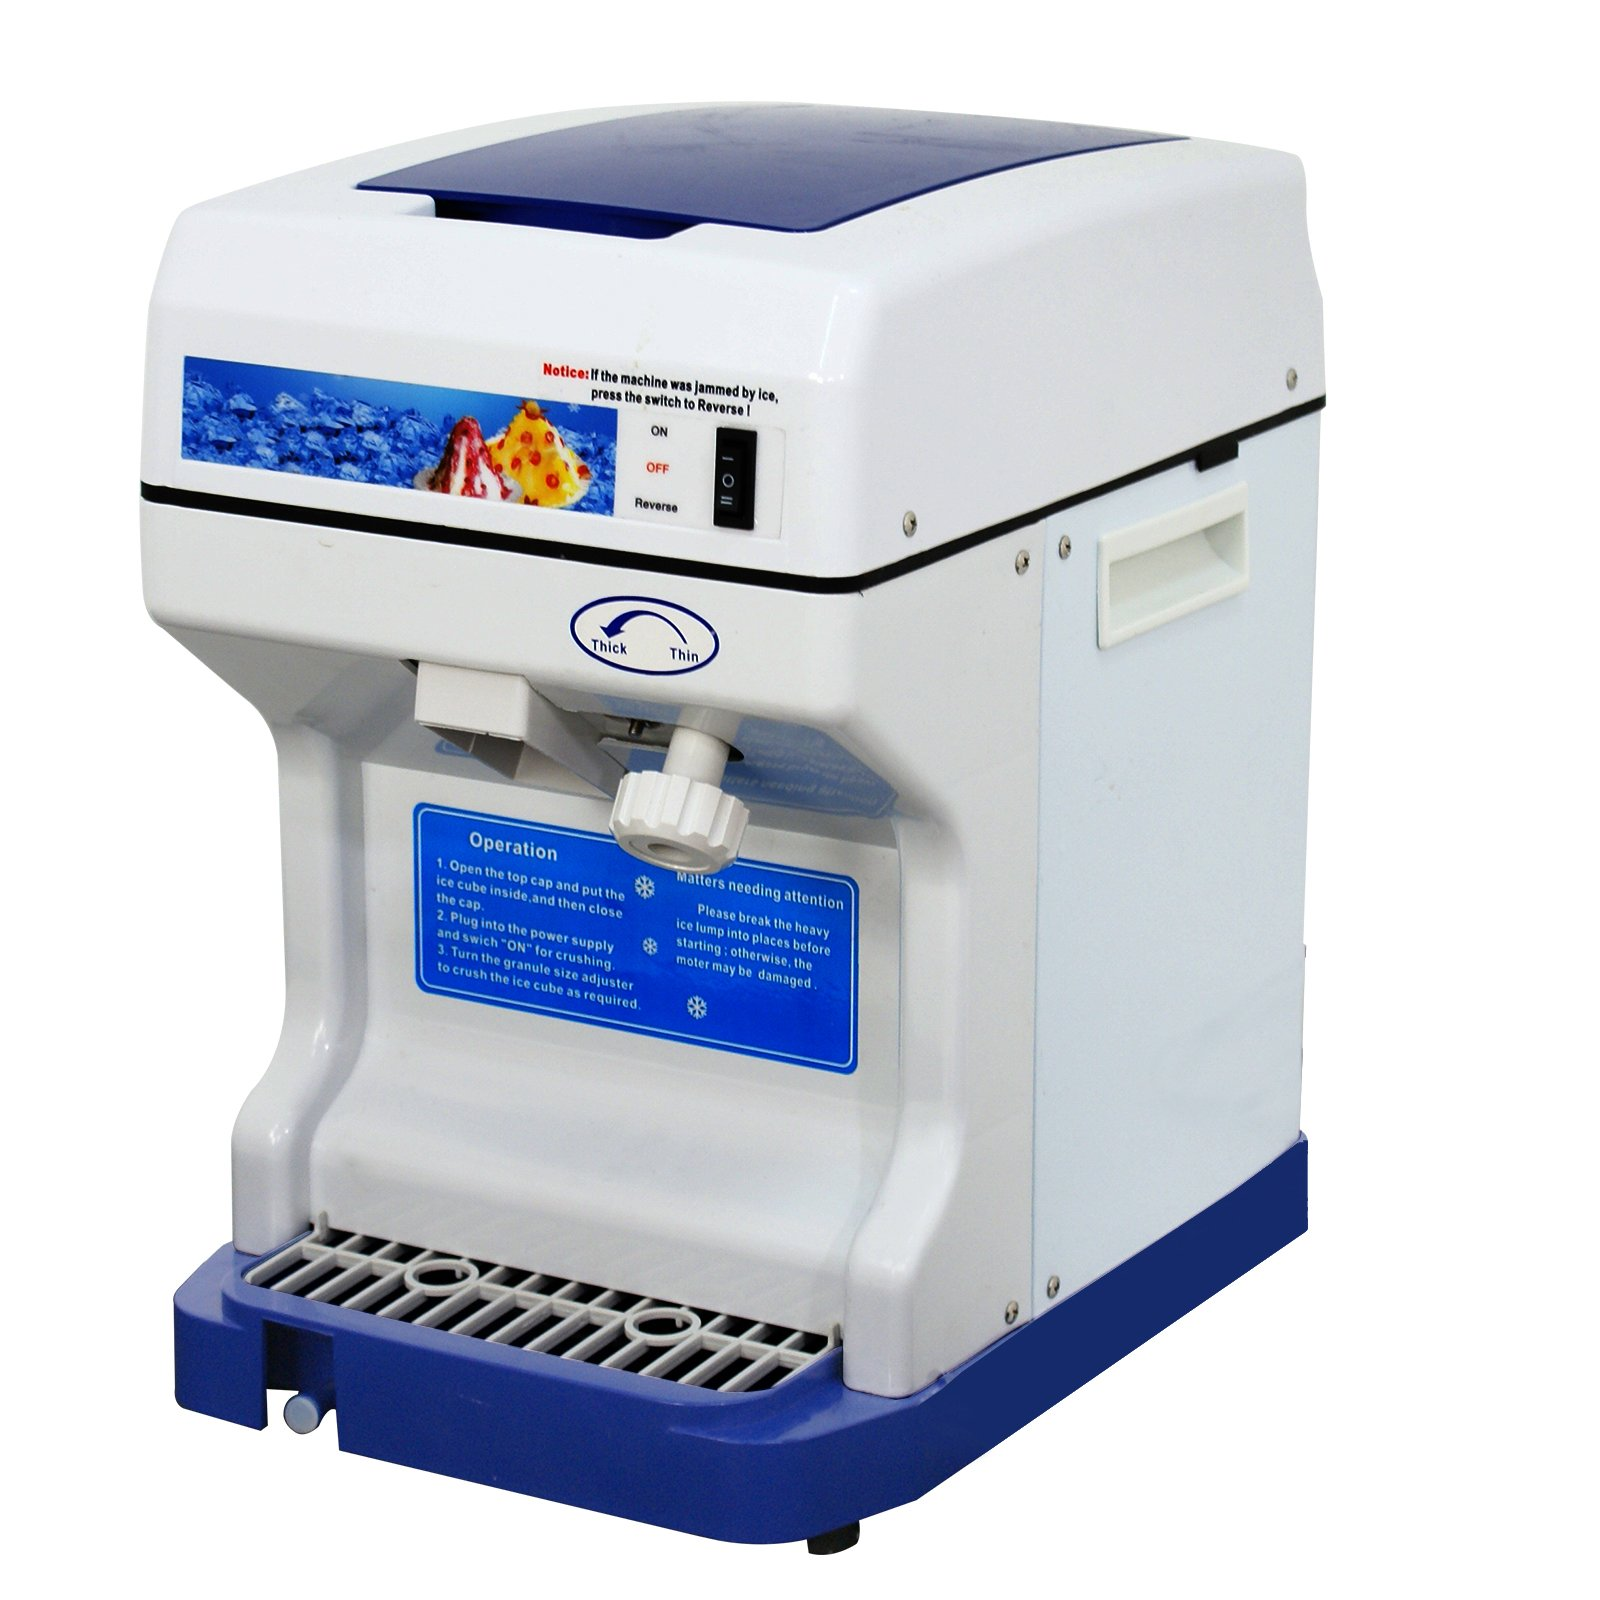 Super Deal Ice Crusher Maker, Commercial Ice Shaver Snow Cone Equipment For Parties Events